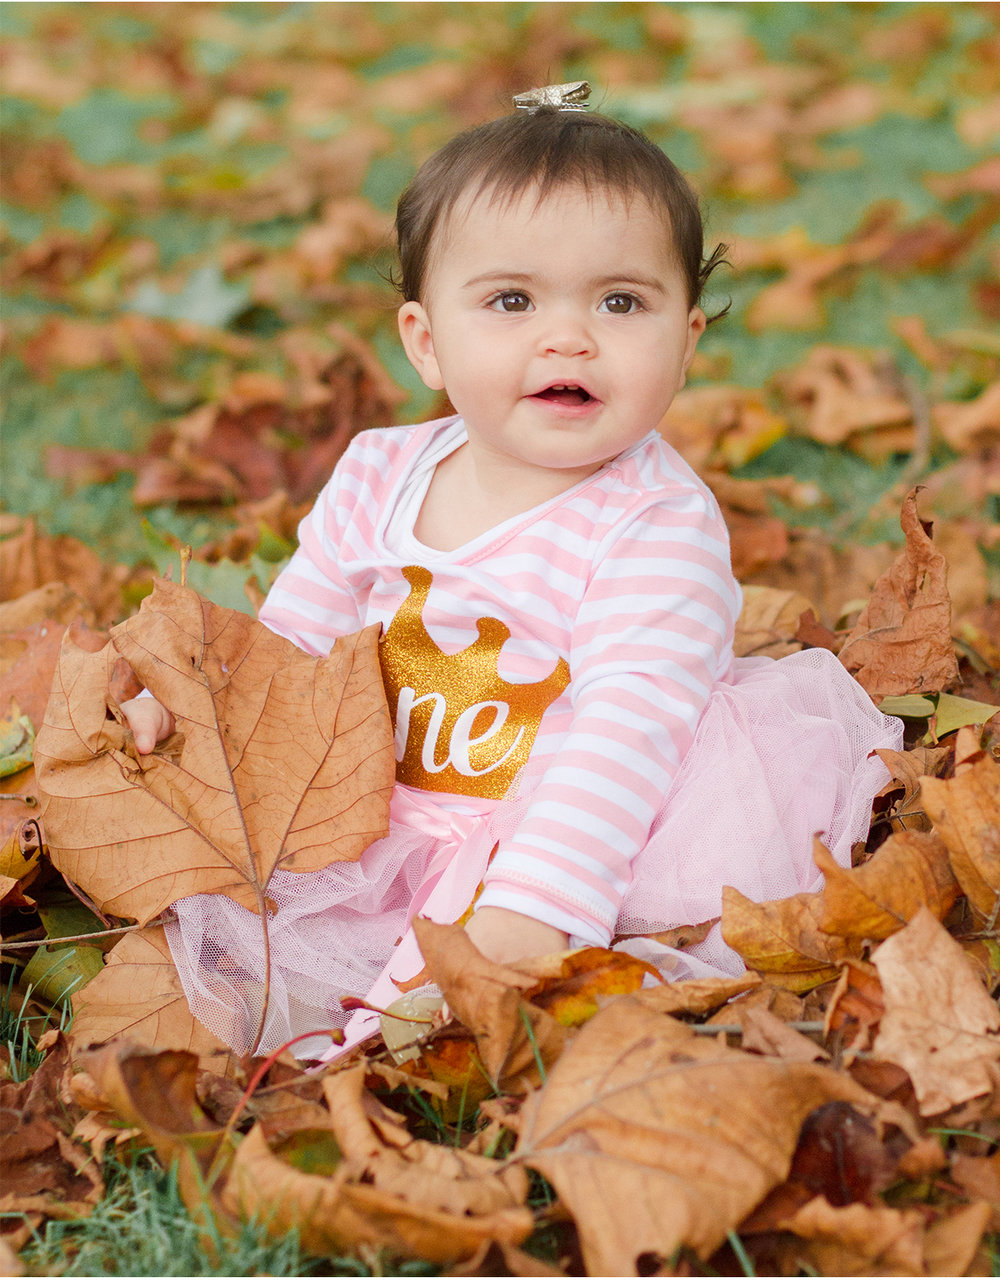 Young-Family-Fall_09.jpg